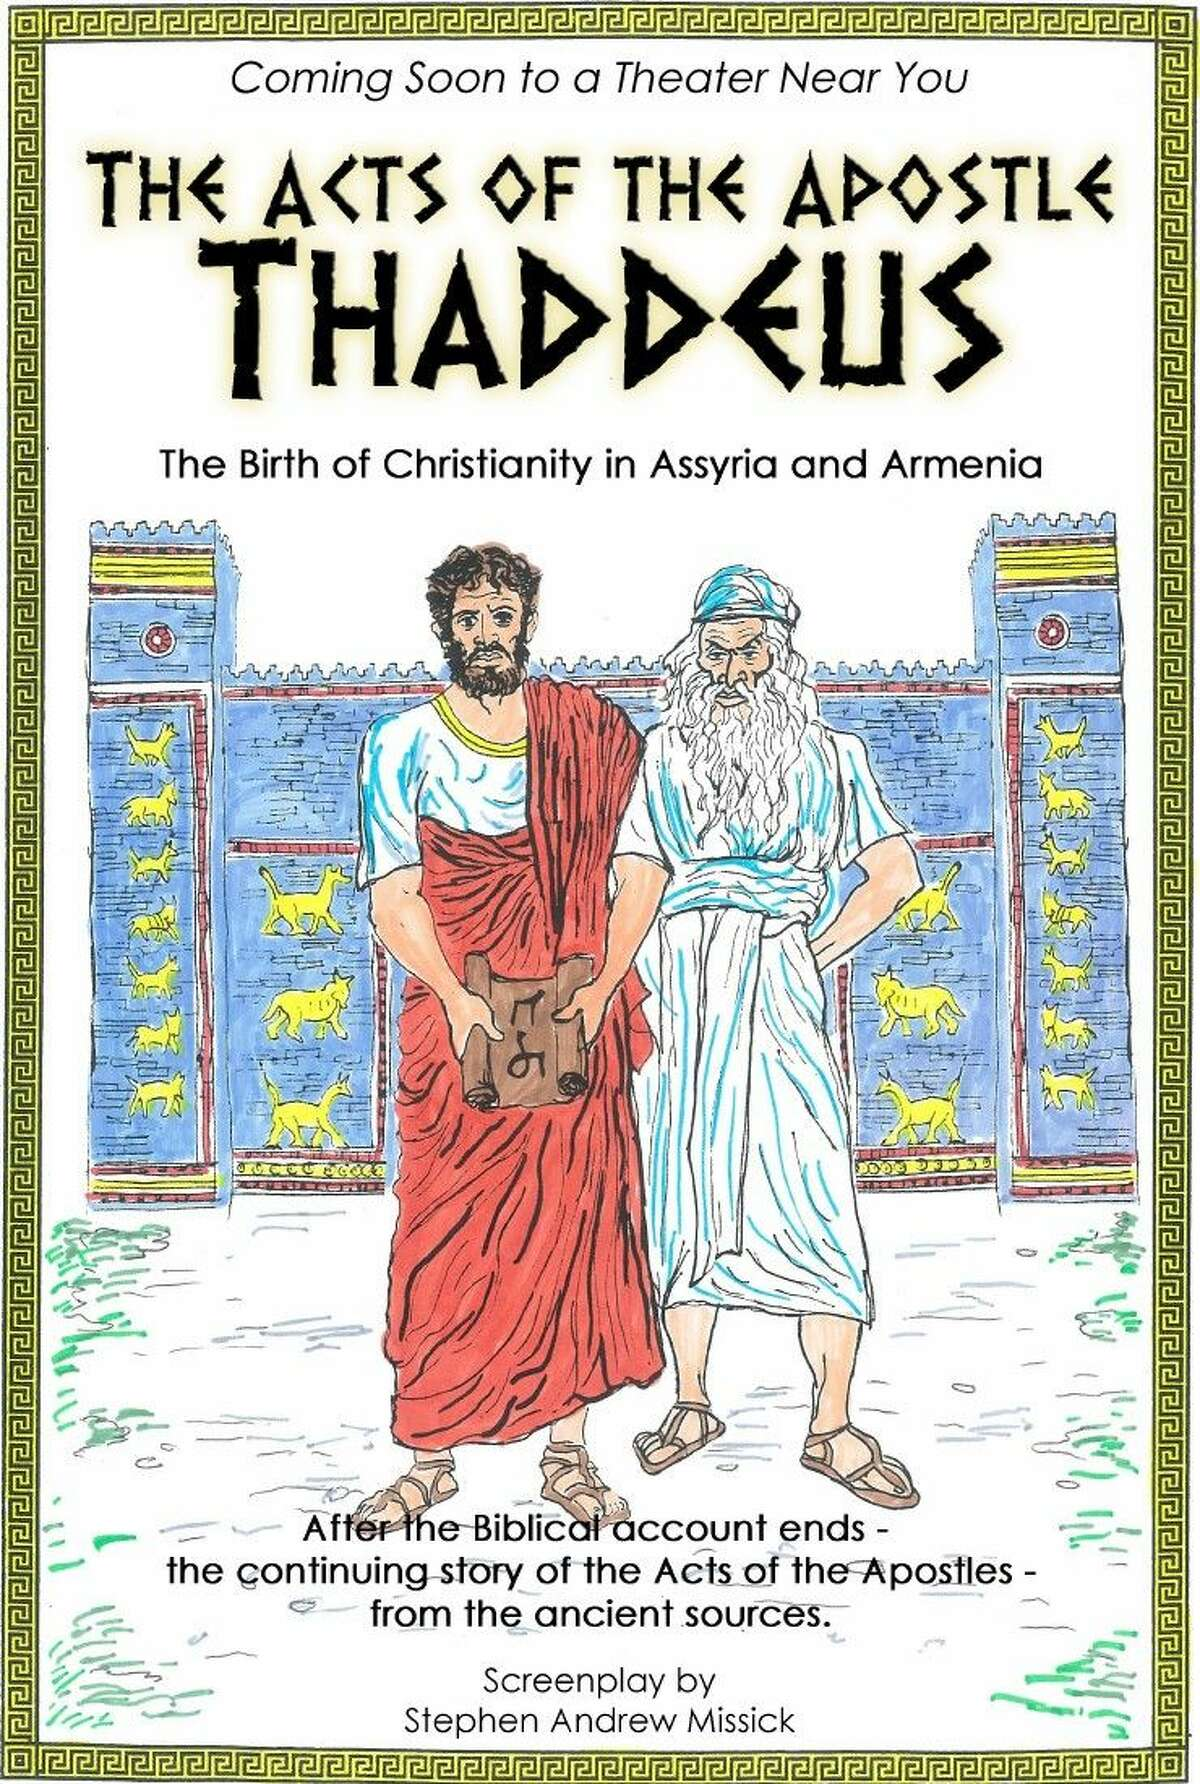 """A biblical screenplay, written and produced by Cleveland-area pastor Stephen Missick, depicts the life of the Apostle Thaddeus. The film has already acquired set designs and costumes, previously used by production teams on the television series """"Spartacus."""""""